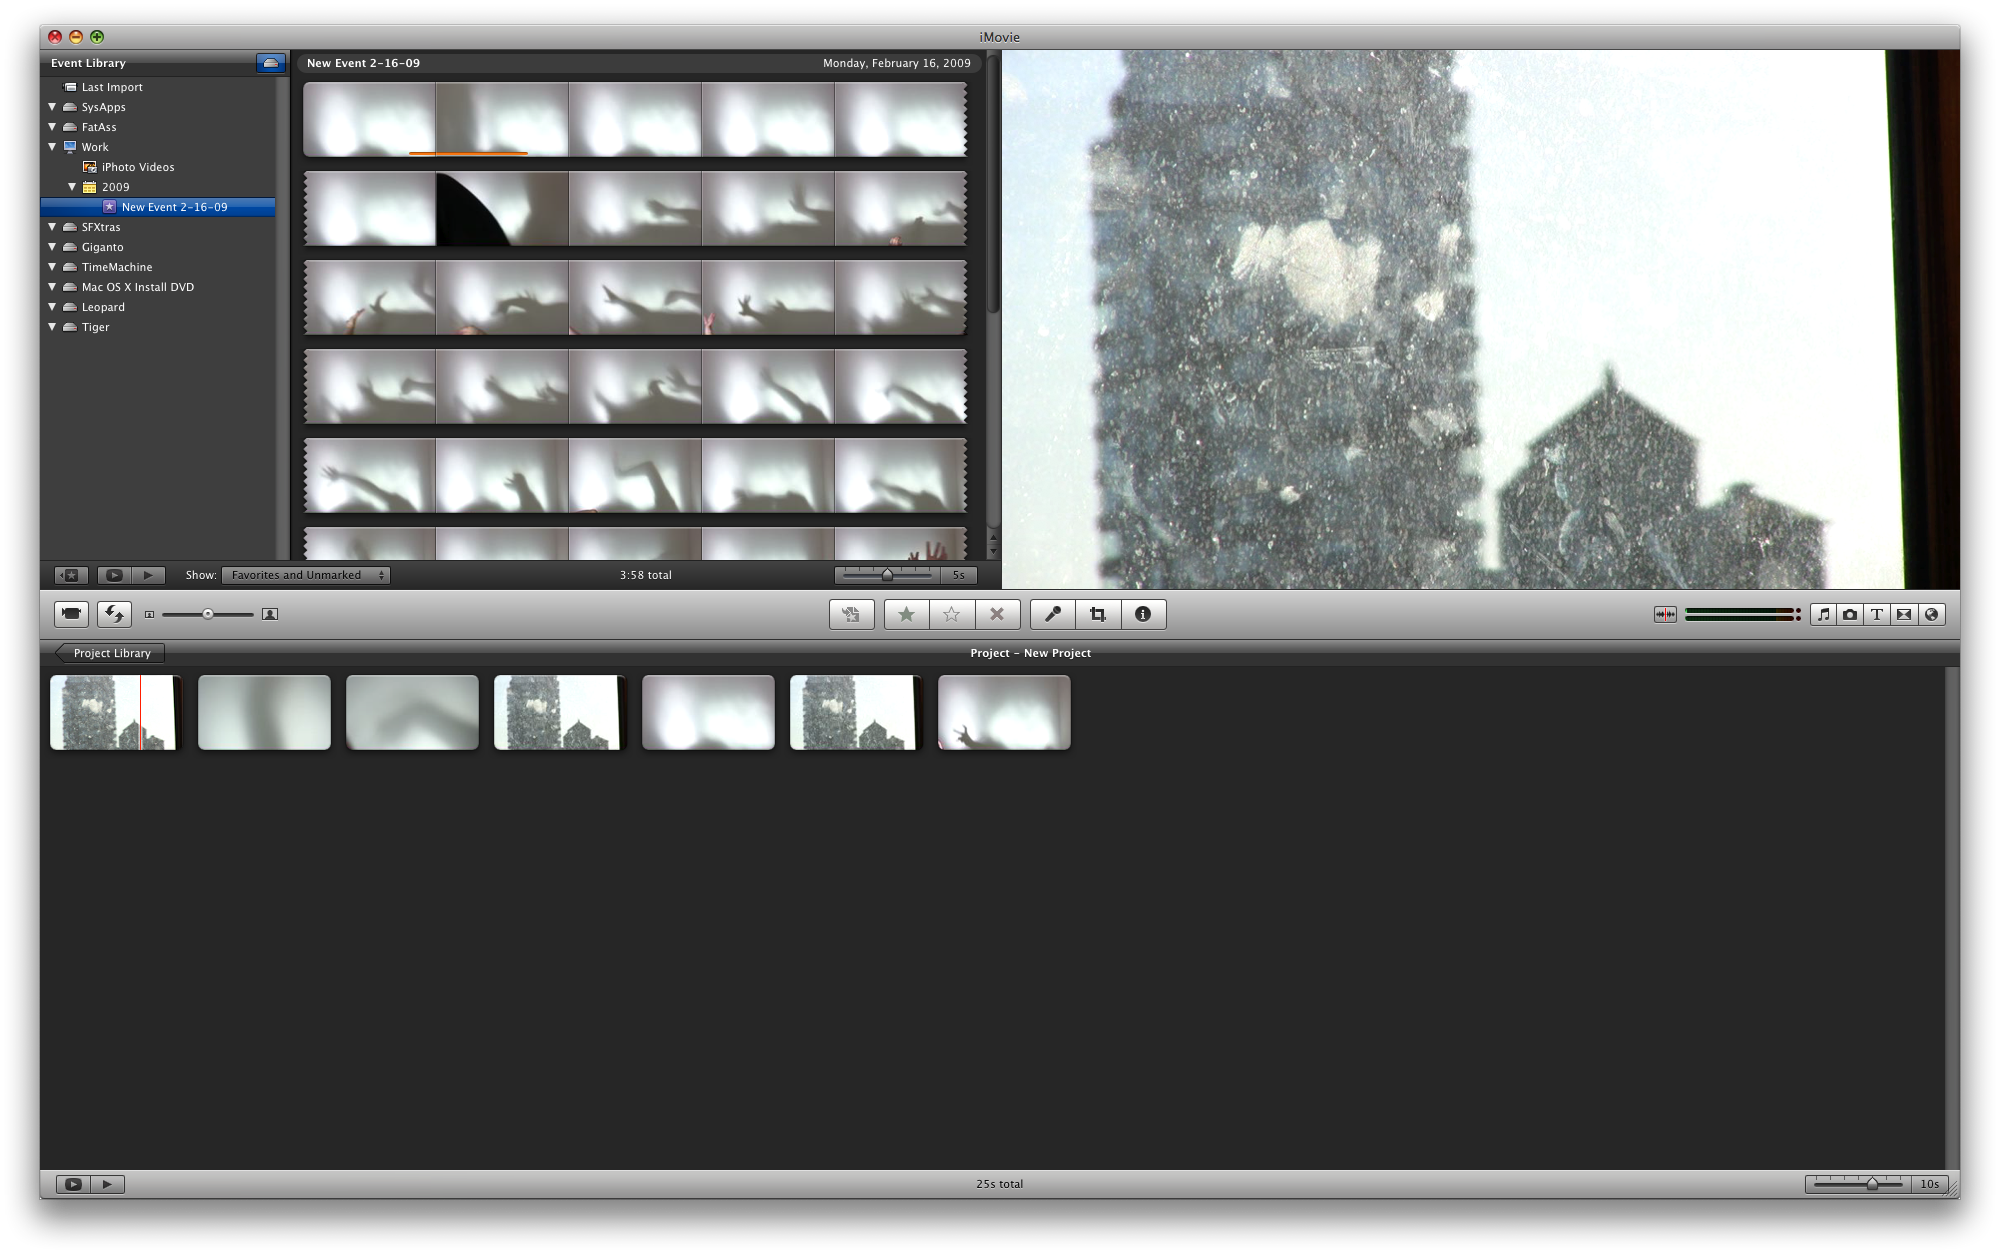 iMovie 8: The Populated Interface